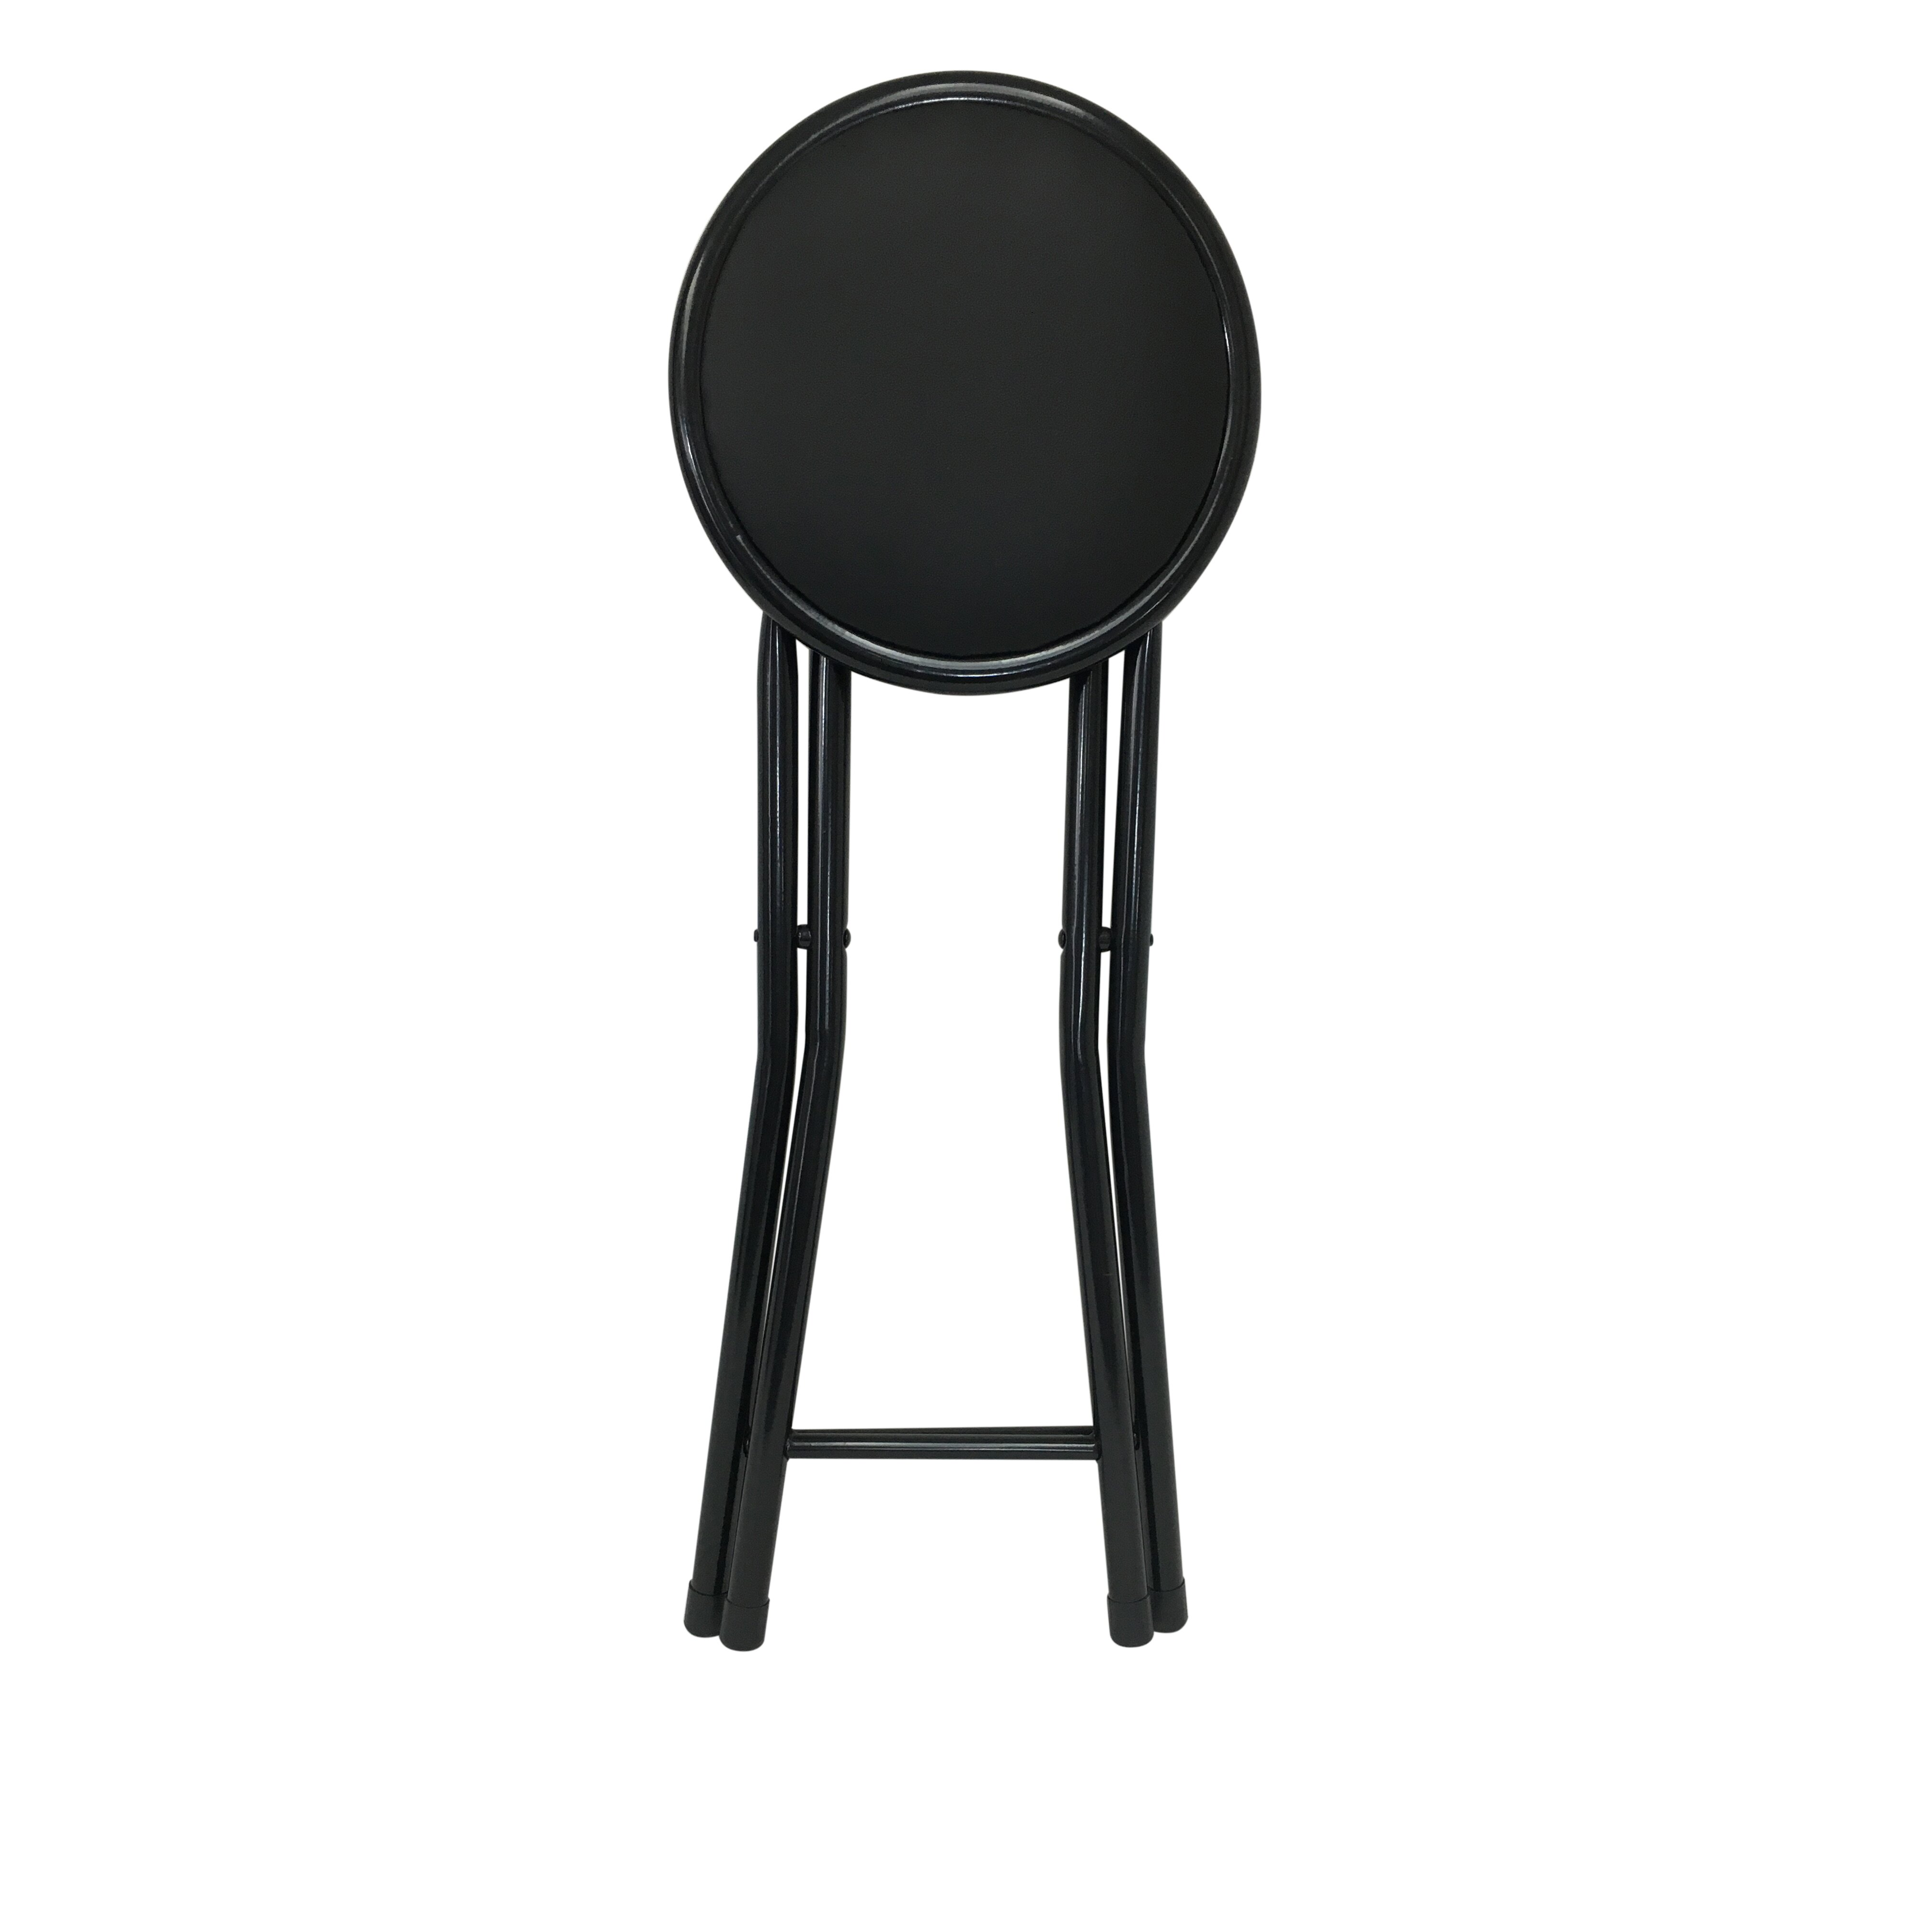 Wees Beyond 24quot Bar Stool with Cushion amp Reviews  : Wees Beyond 24 Bar Stool with Cushion 1221 from www.wayfairsupply.com size 4032 x 4032 jpeg 623kB